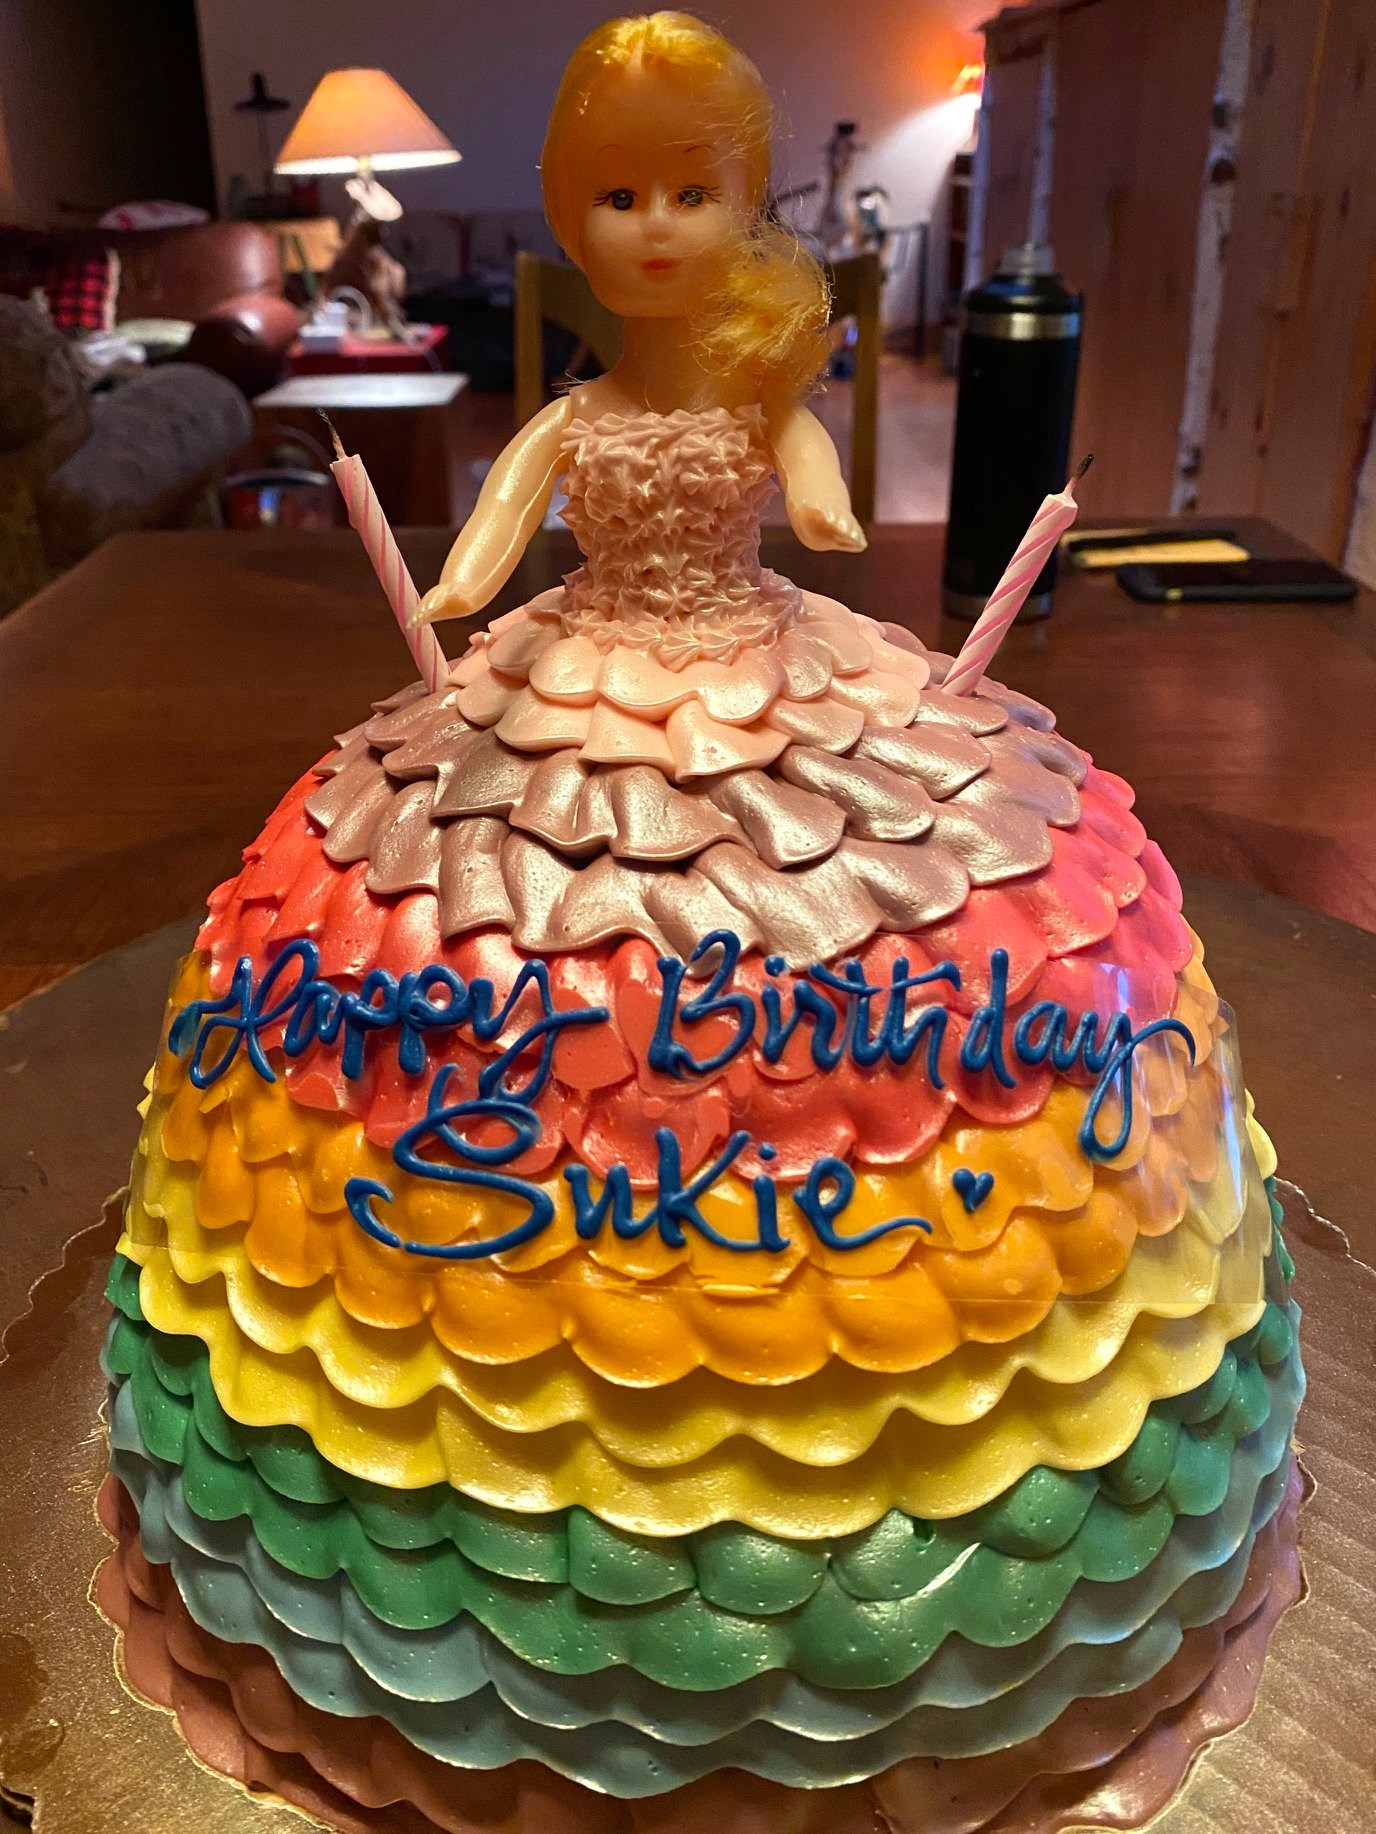 Mom's Barbie-shaped birthday cake from Dinkel's Bakery.